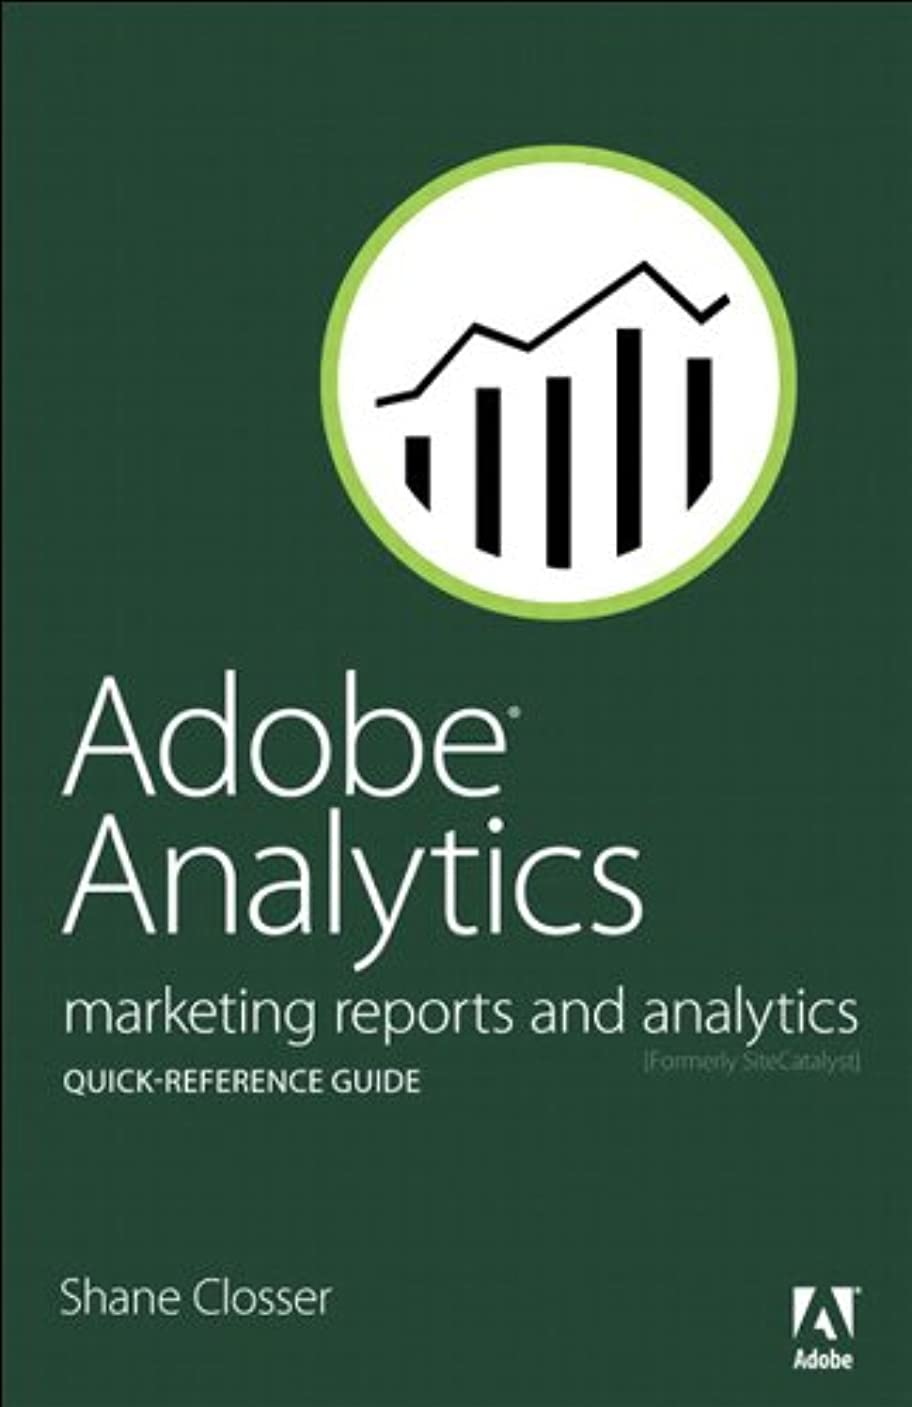 ペイント摂動告白するAdobe Analytics Quick-Reference Guide: Market Reports and Analytics (formerly SiteCatalyst) (English Edition)